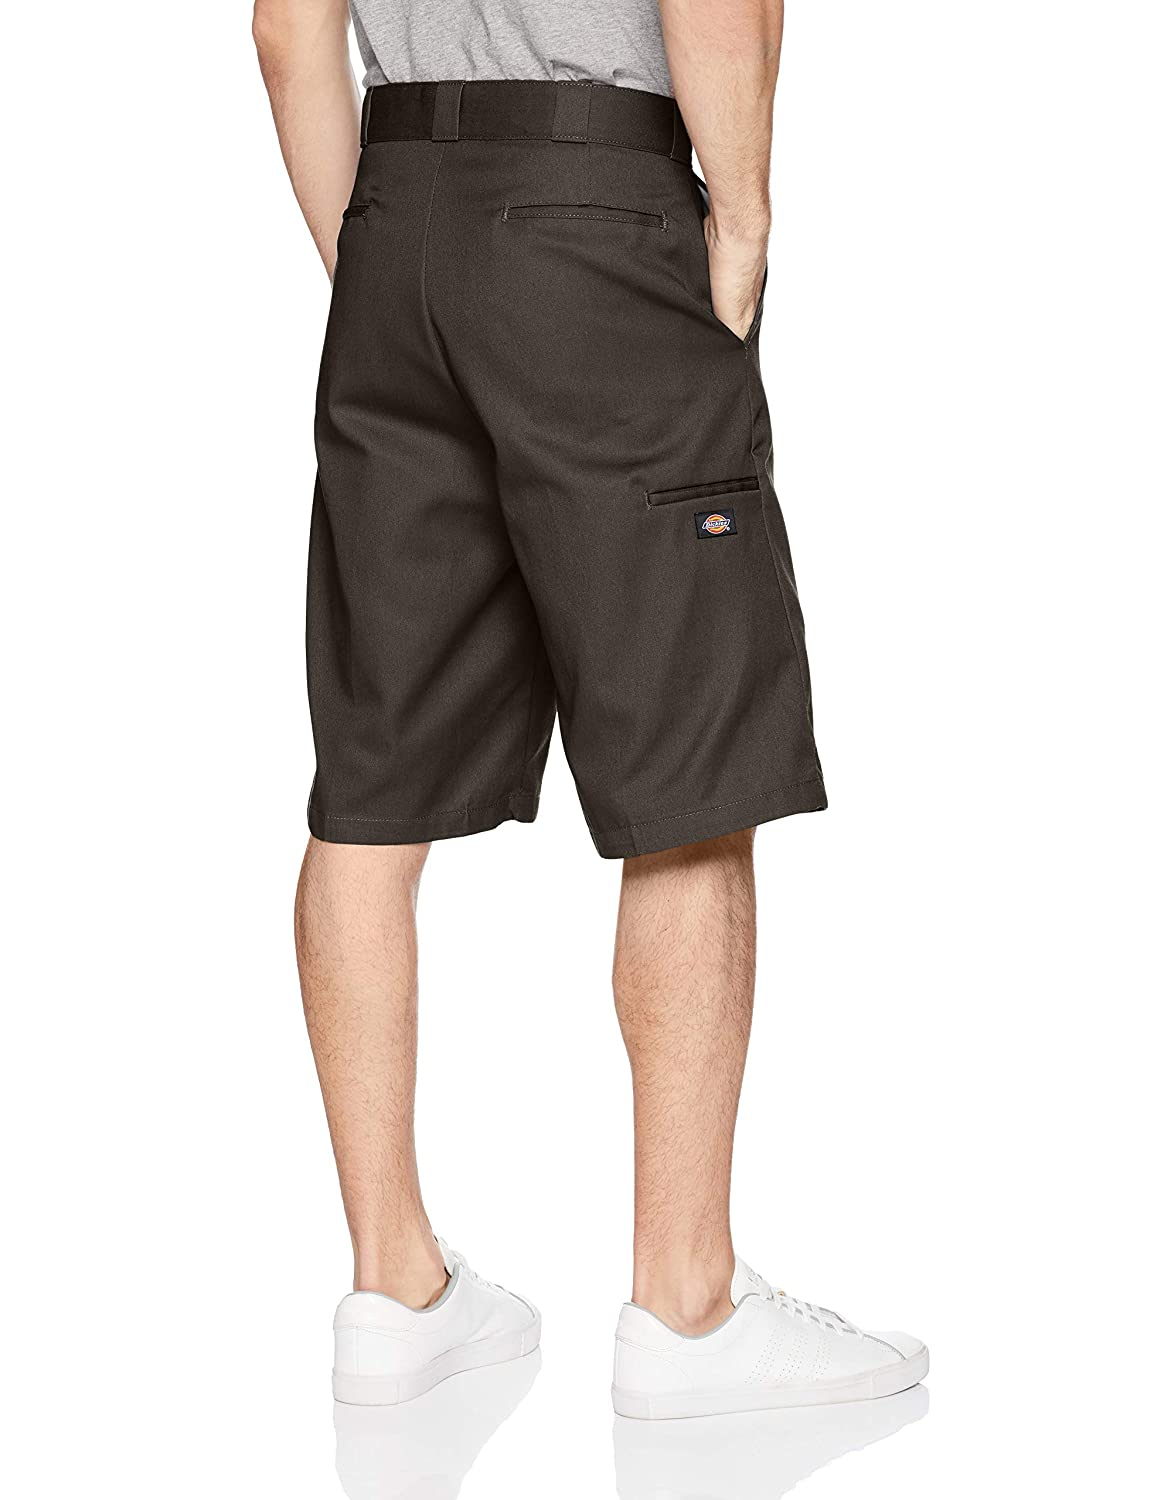 71e97b89e2 Amazon.com: Dickies Men's 13 Inch Loose Fit Multi-Pocket Work Short:  Clothing